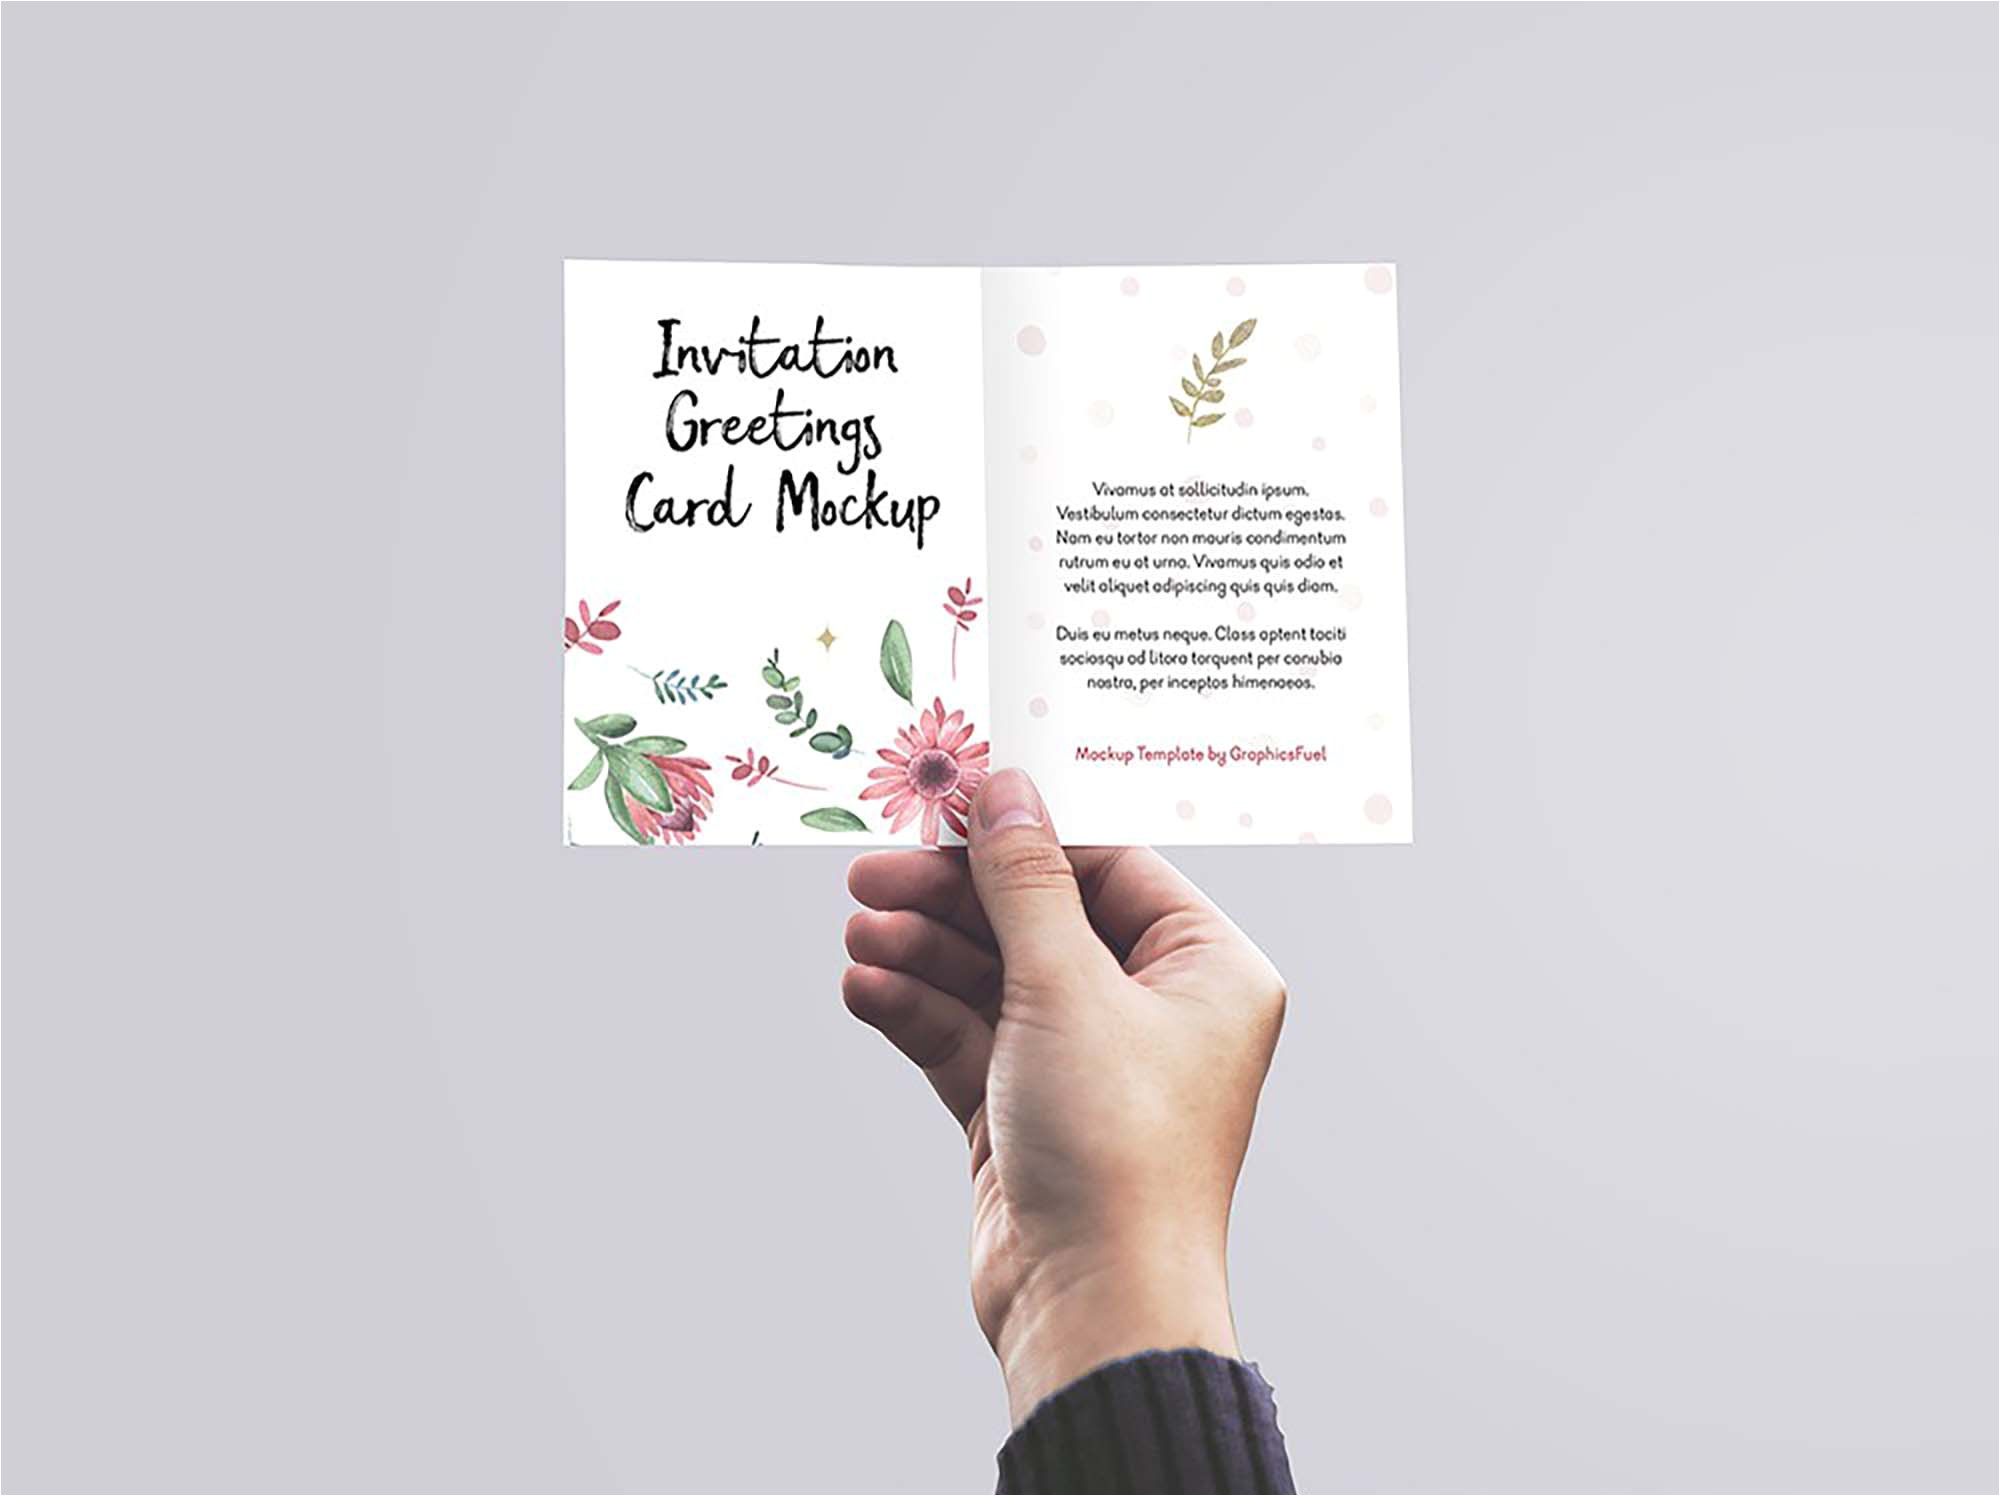 invitation greeting card in hand mockup 4 jpg